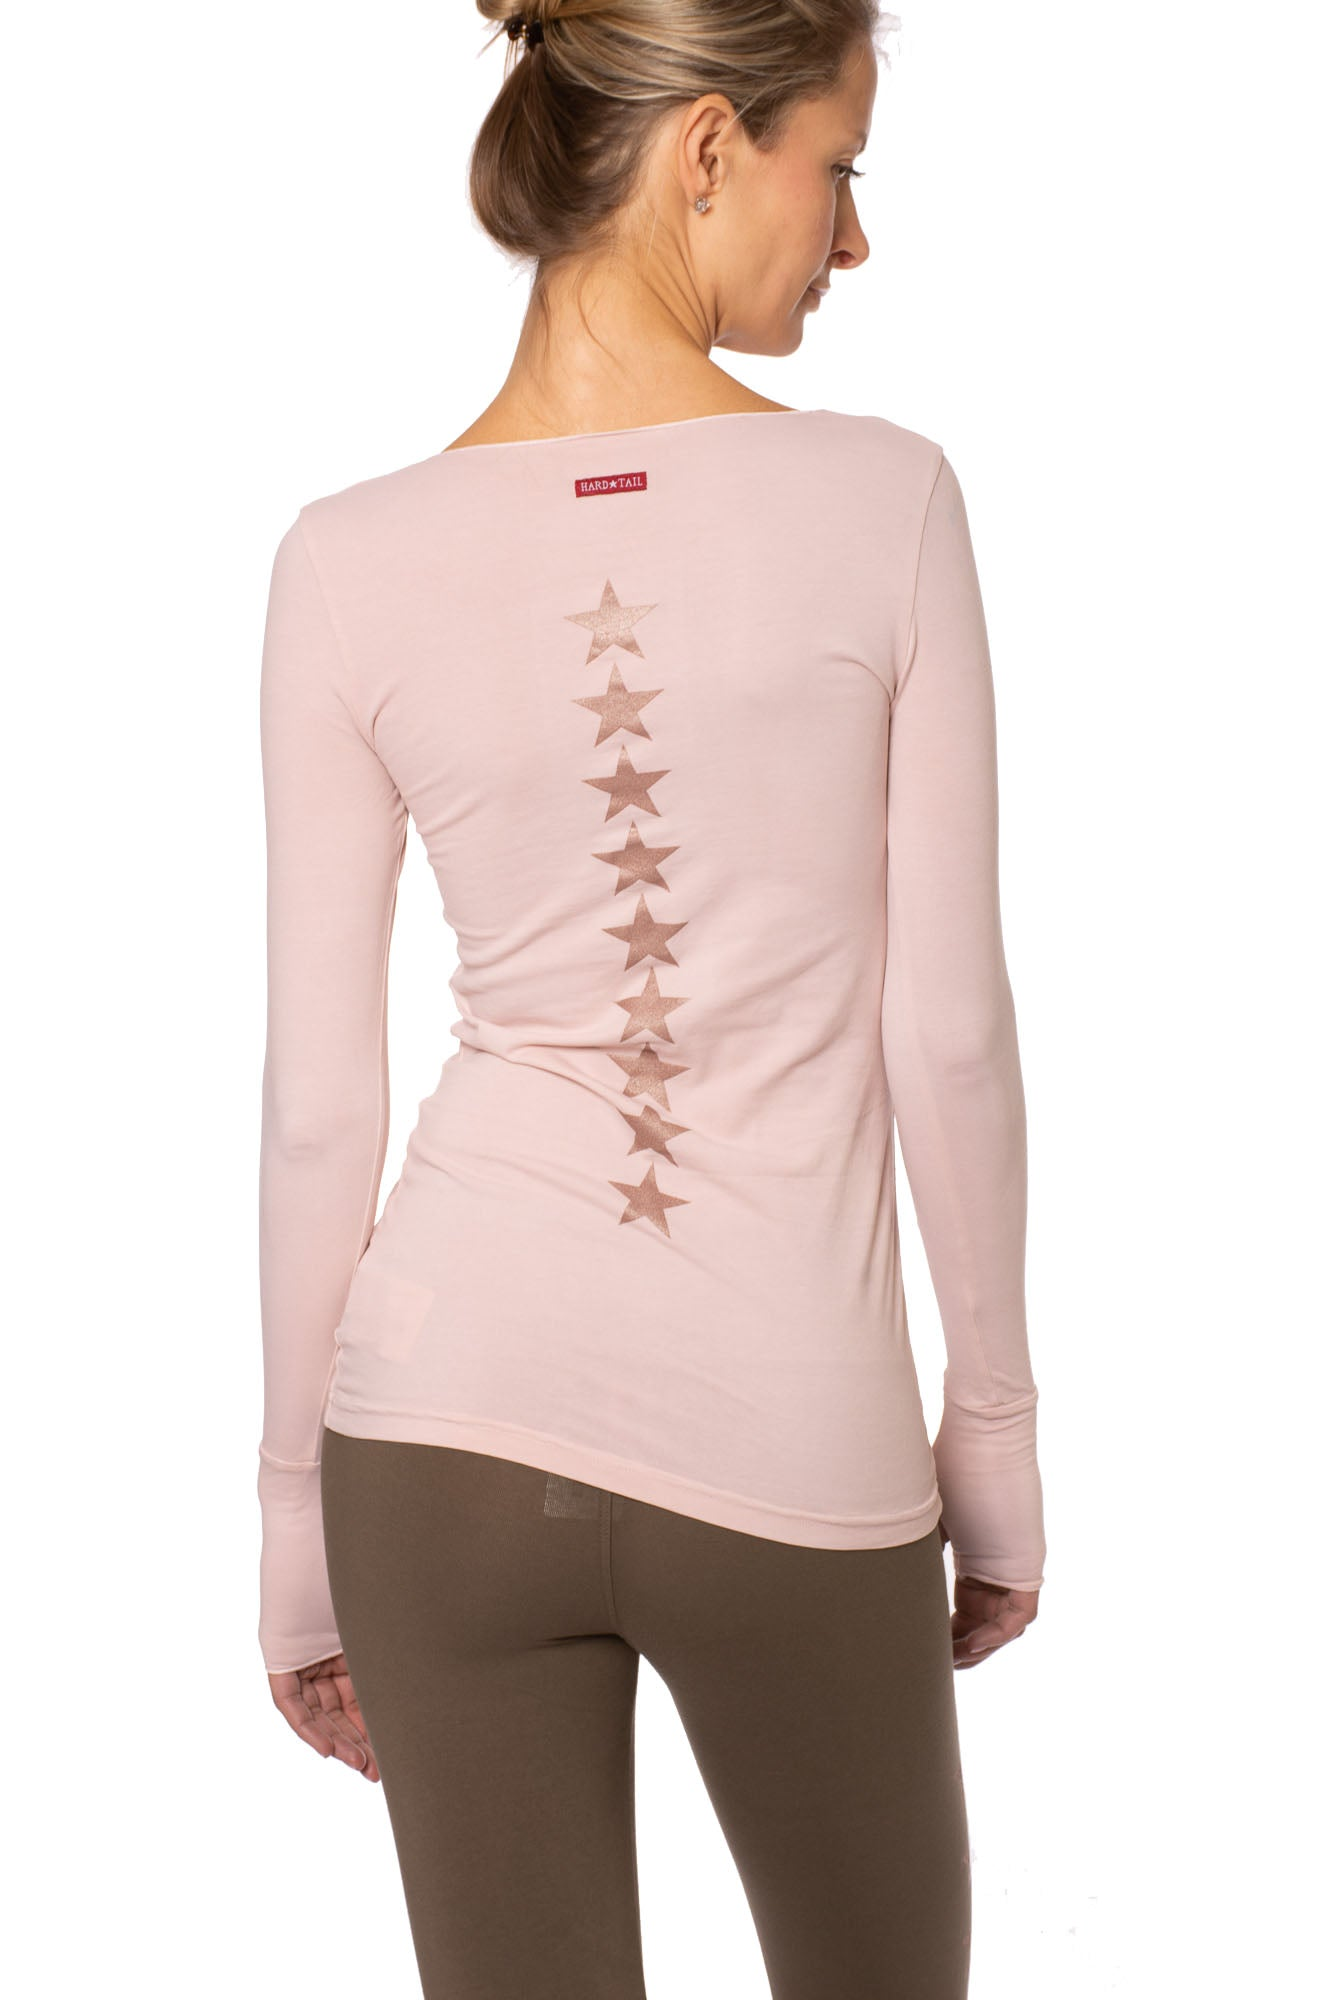 Hard Tail Forever - Long Sleeve Thumbhole w/Star On Back (SL-143-602, Rose w/Rose Gold)